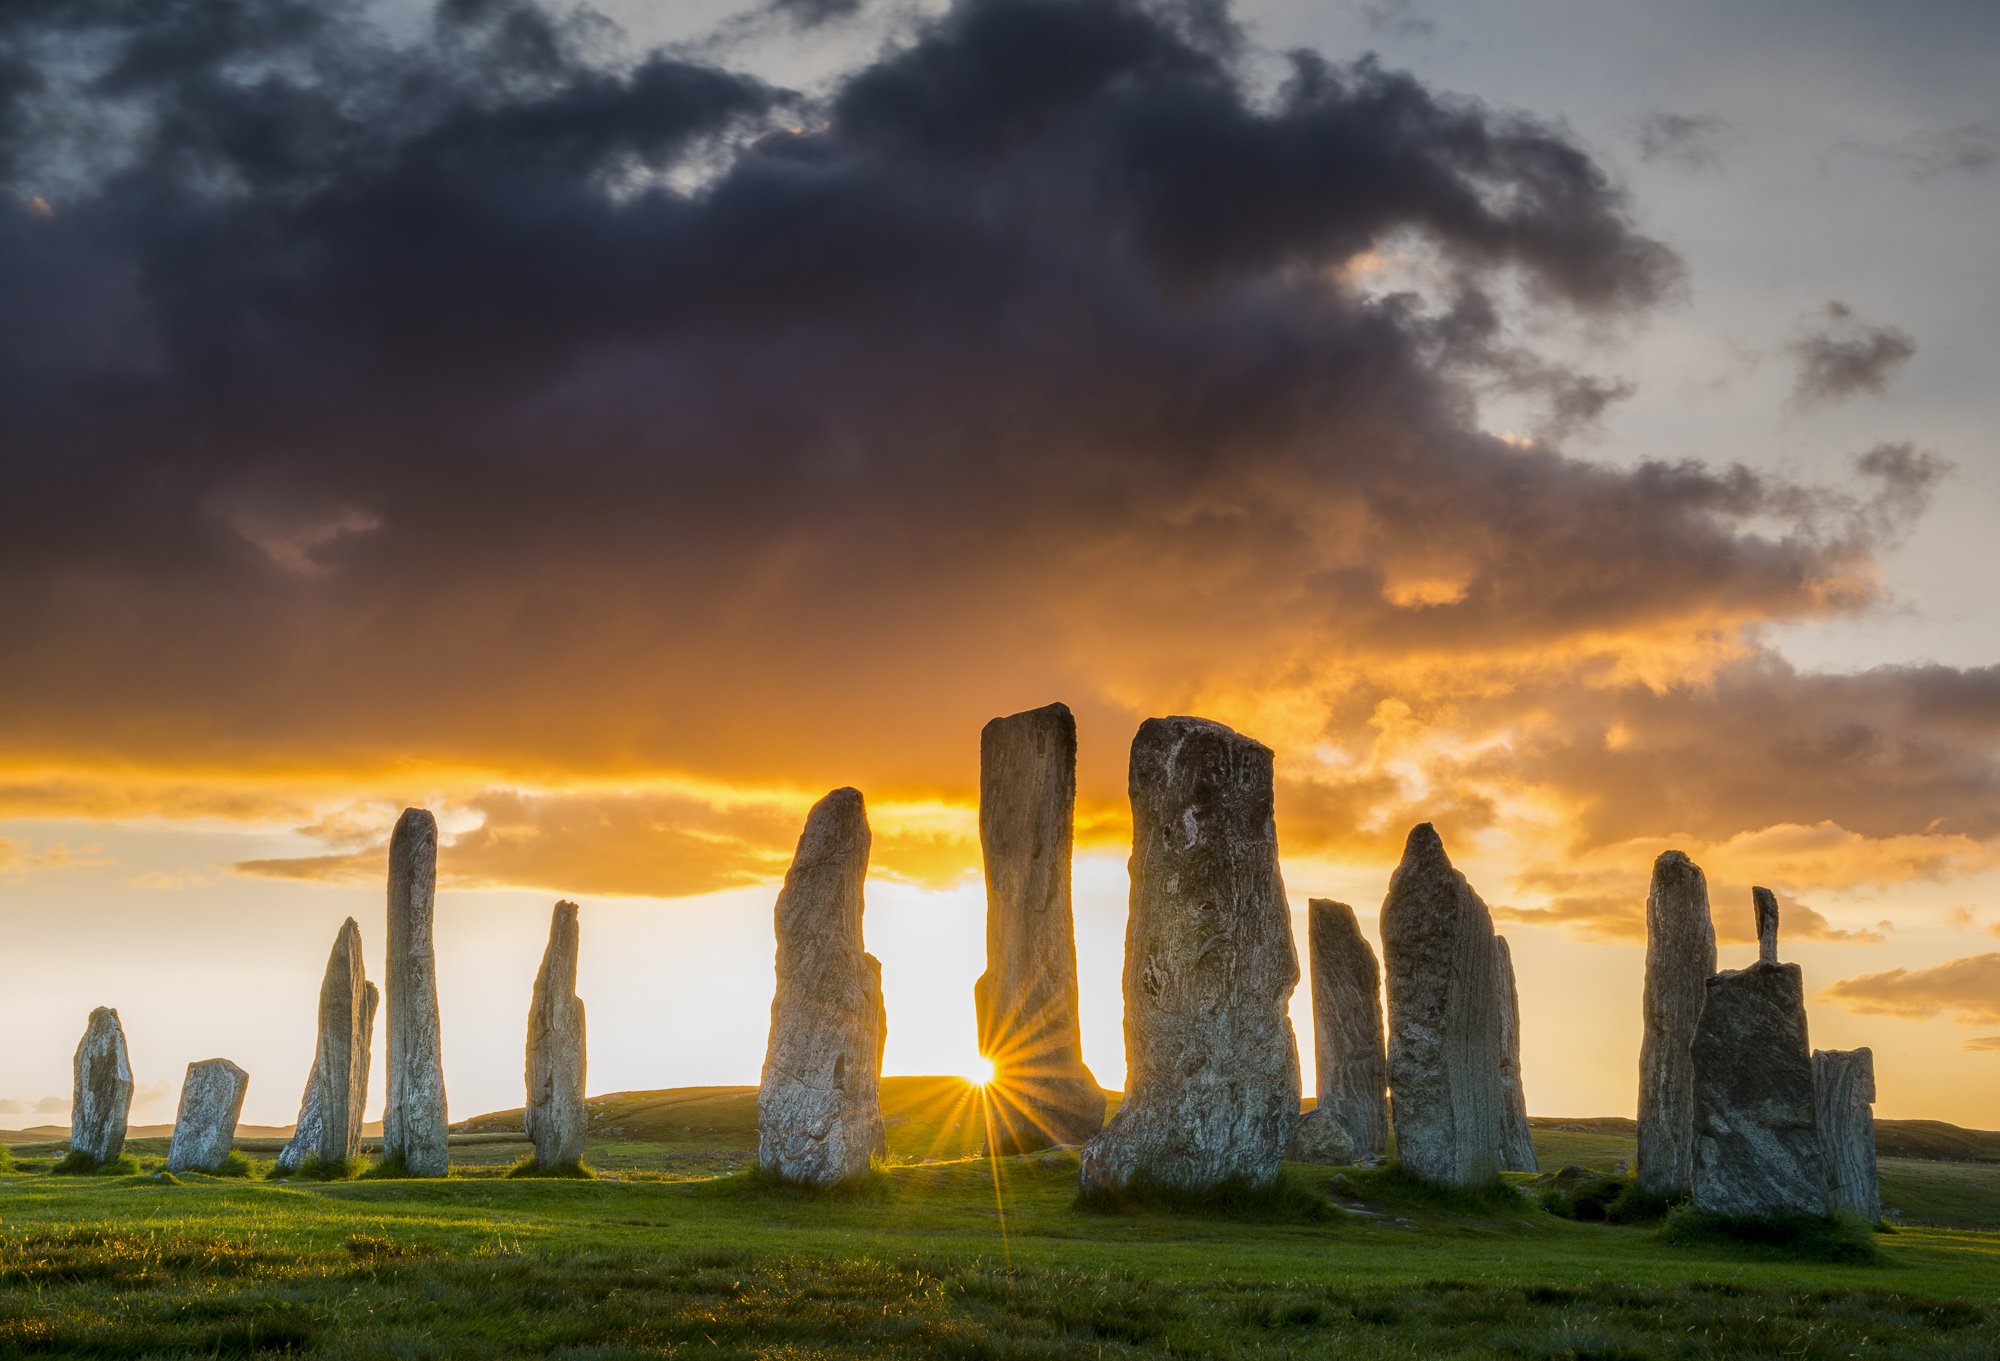 Callanish Standing Stones at Sunset, Isle of Lewis, Outer Hebrides, Scotland